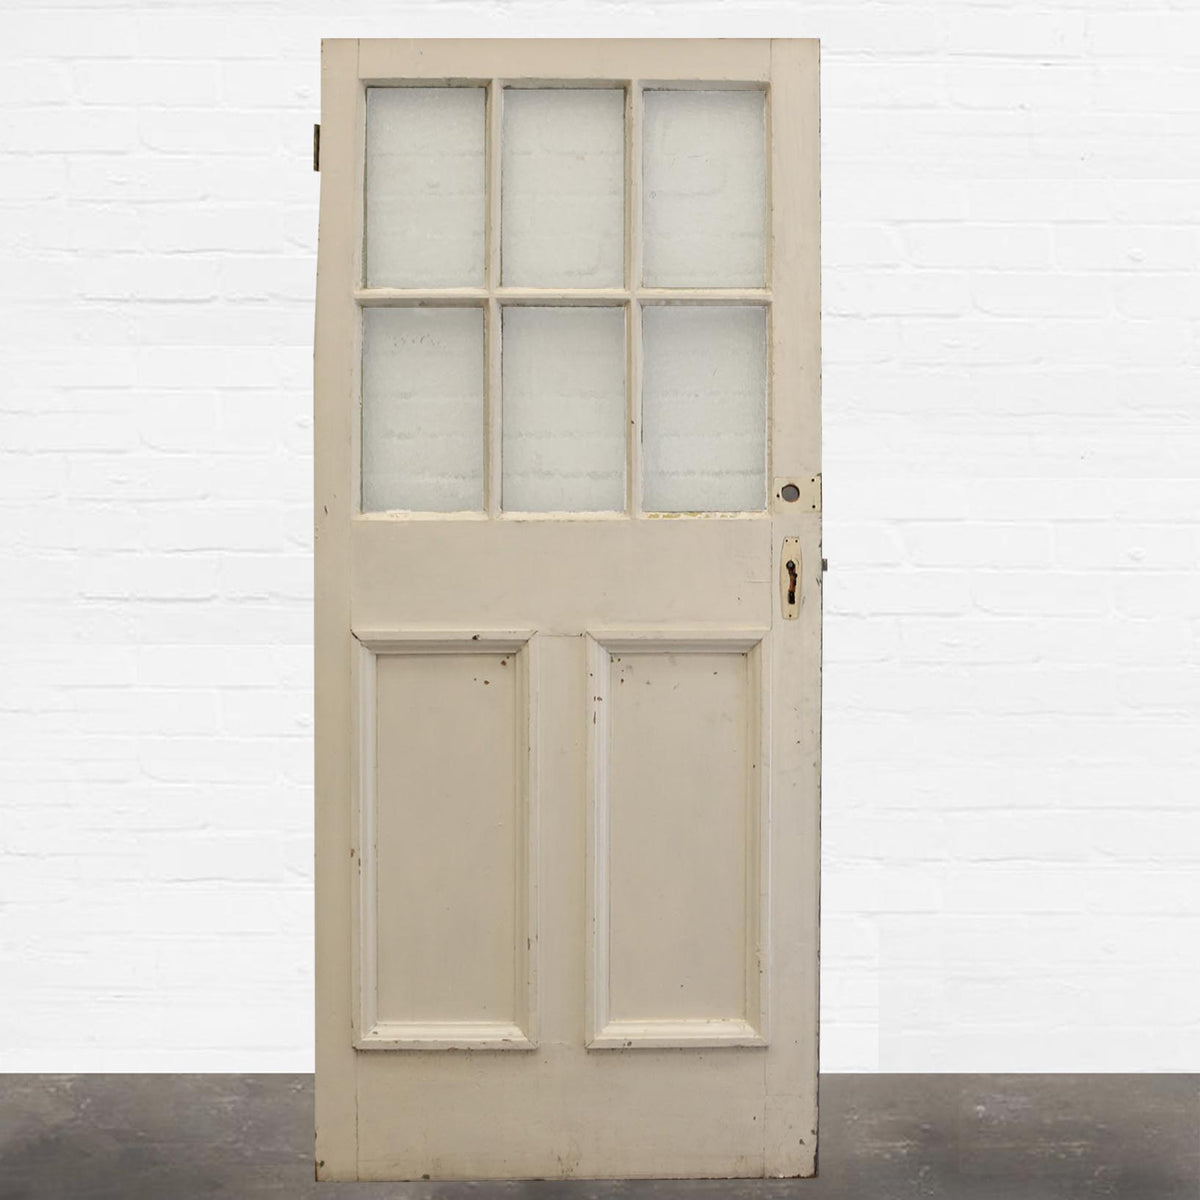 Victorian 3 panel Door - 212cm x 93cm | The Architectural Forum